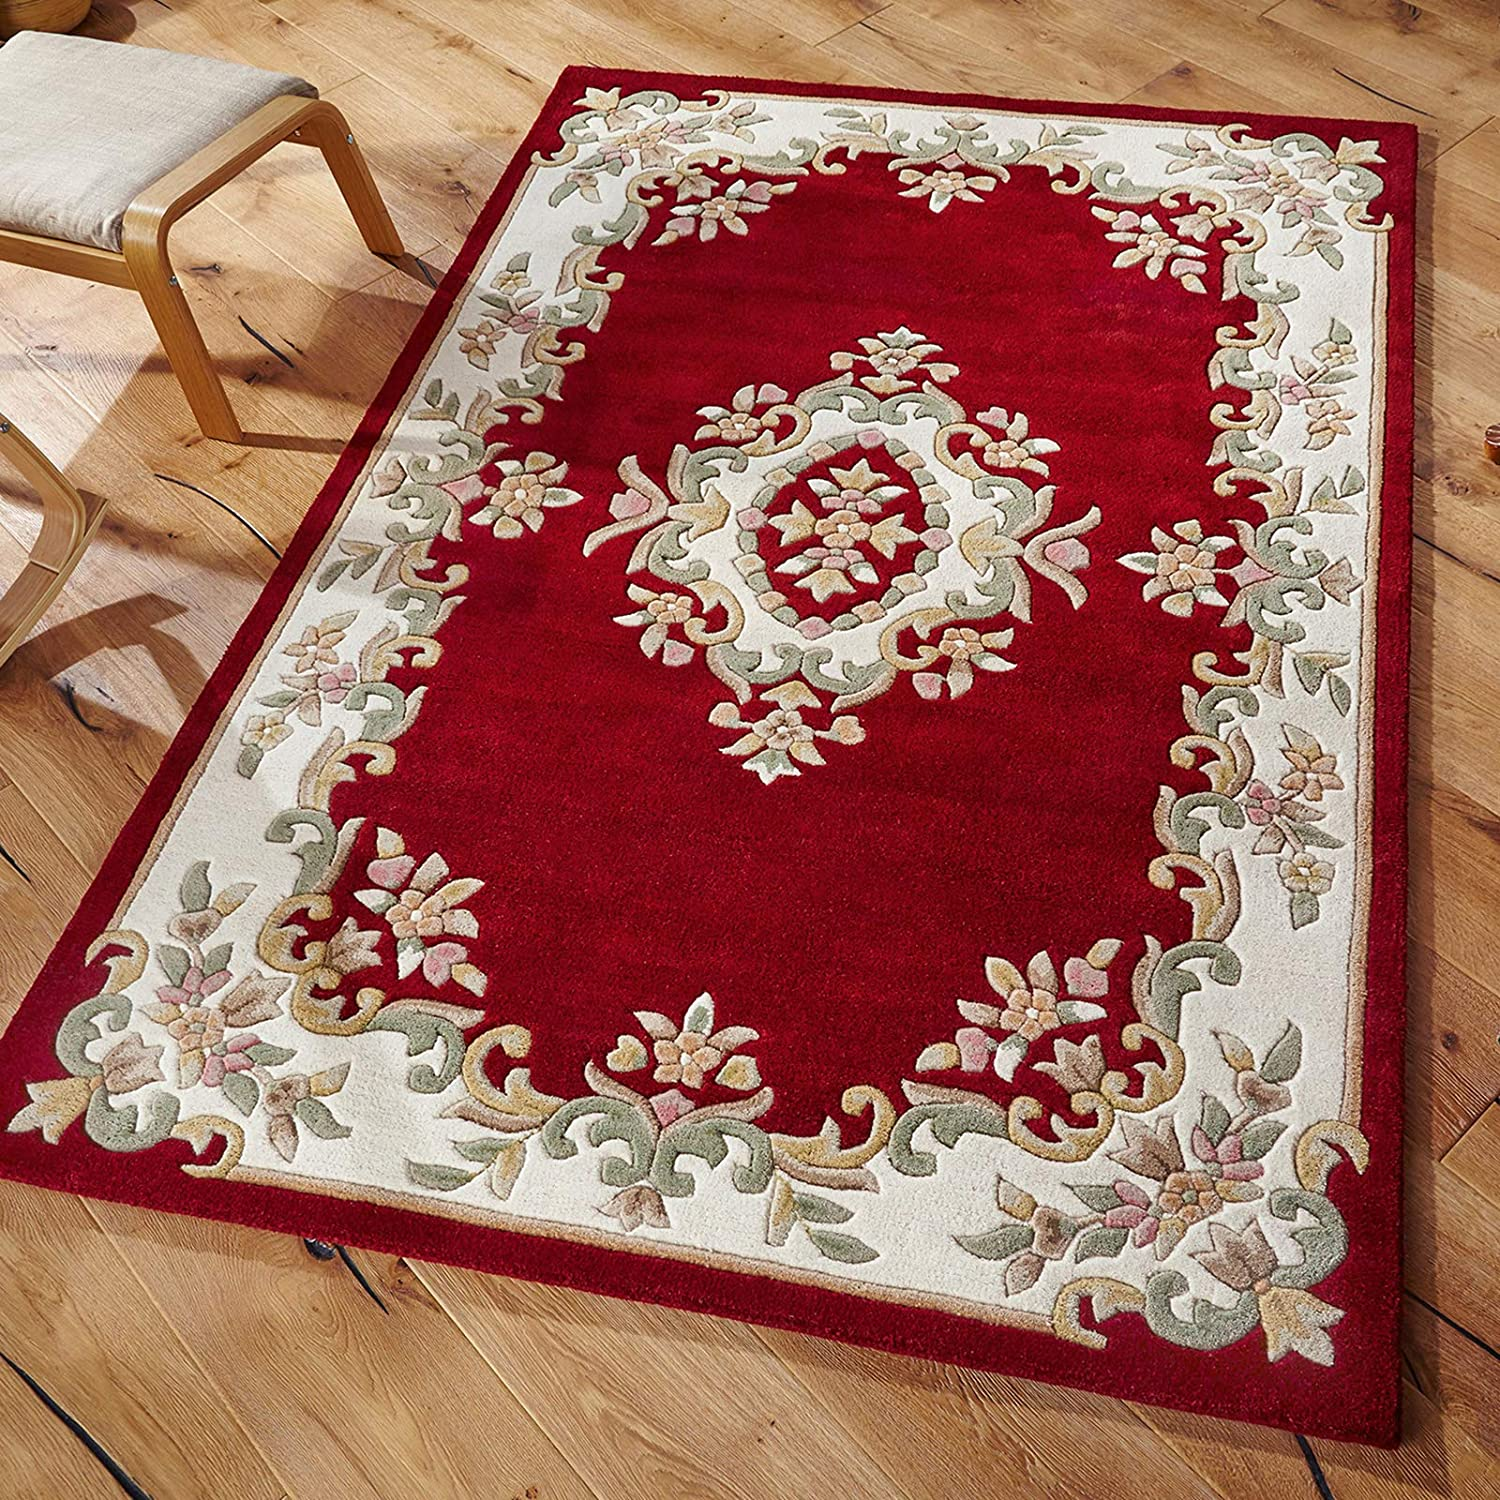 Royal Traditional Rugs - Alfombra Persa Oriental, Lana, Rojo, 160x235cm: Amazon.es: Hogar